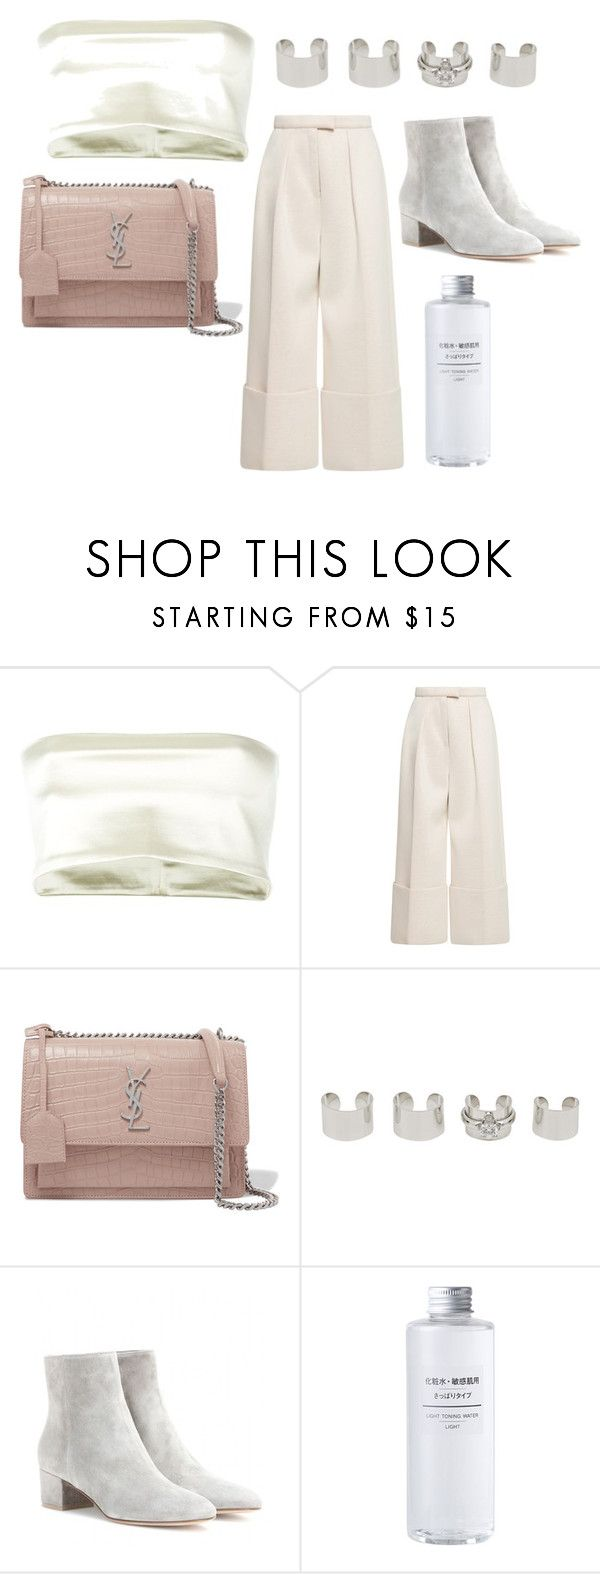 """Sin título #330"" by petitaprenent on Polyvore featuring moda, Romeo Gigli, Yves Saint Laurent, Maison Margiela, Gianvito Rossi y Muji"